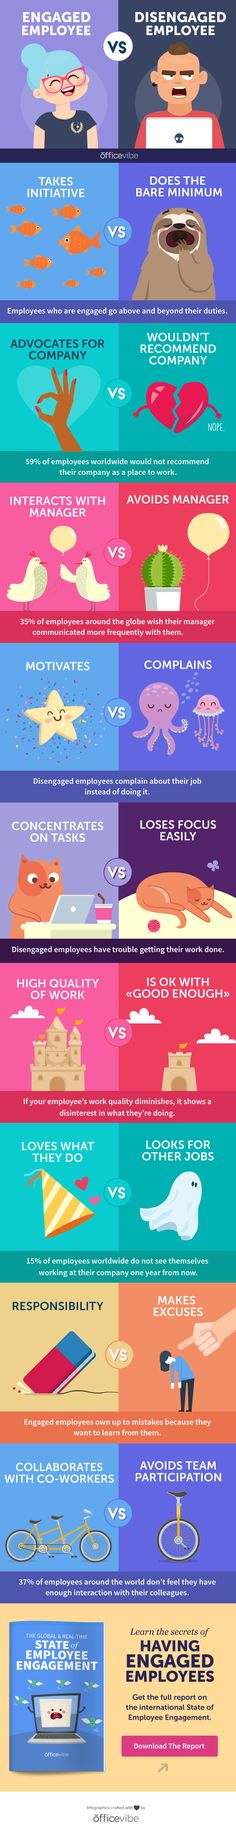 Infographic: Nine Signs Of Engaged VS Disengaged Employees - DesignTAXI.com